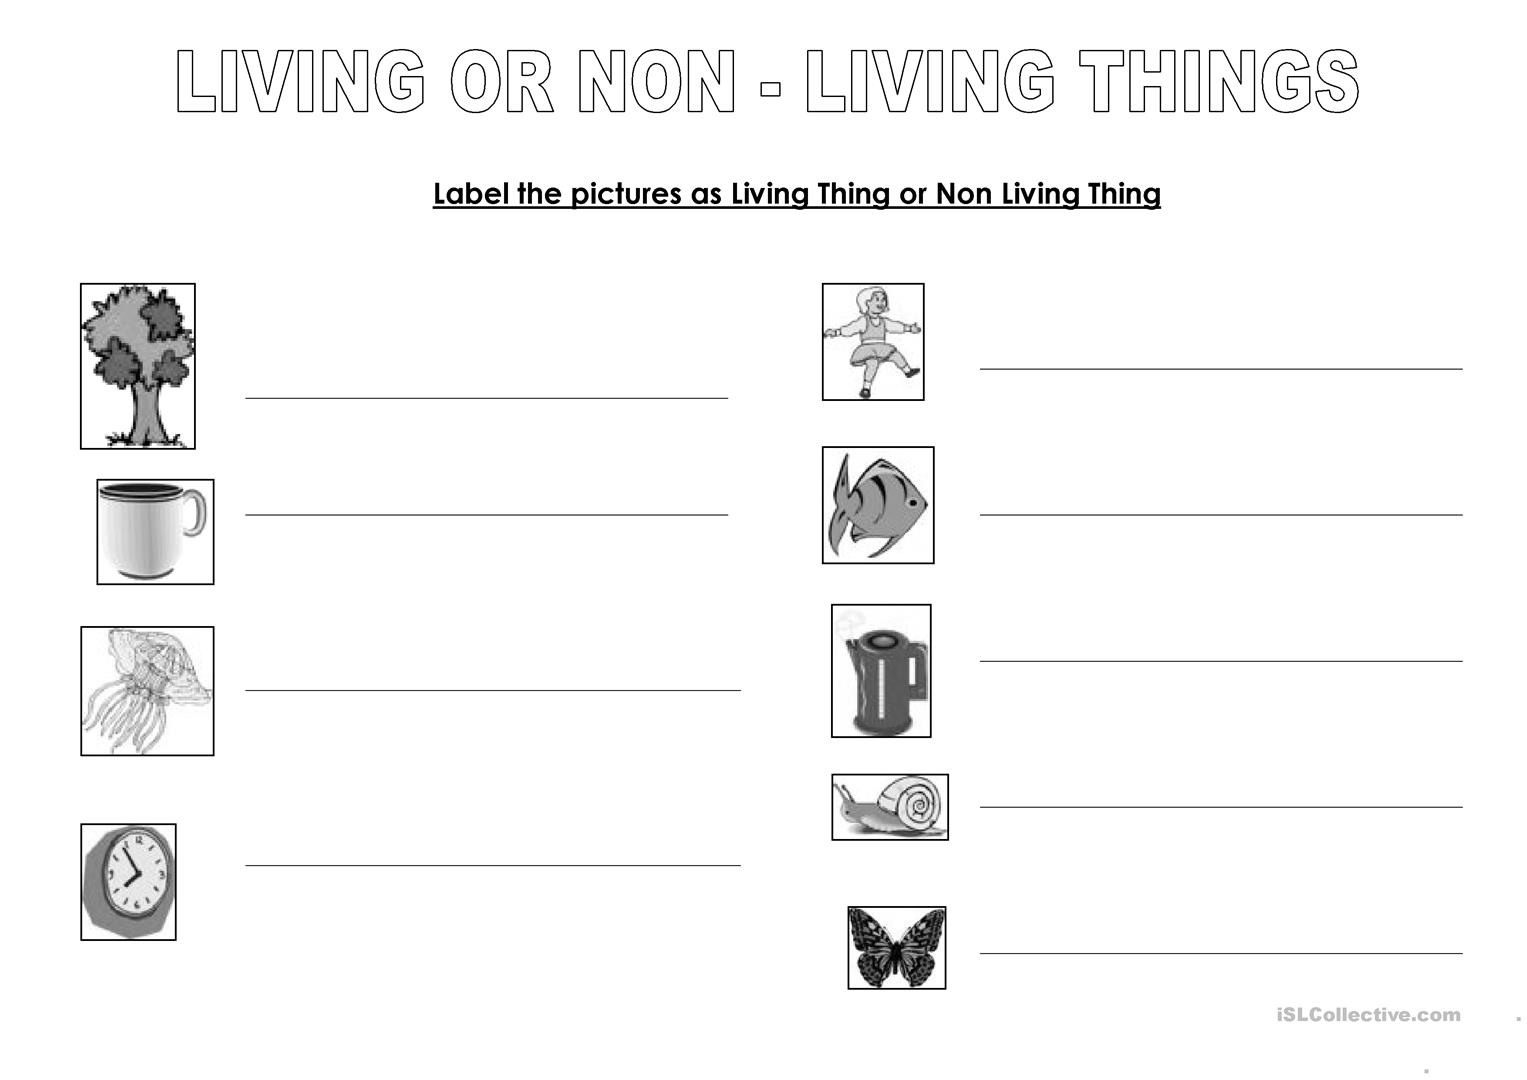 worksheet Living And Nonliving Worksheets living or non things worksheet free esl printable full screen